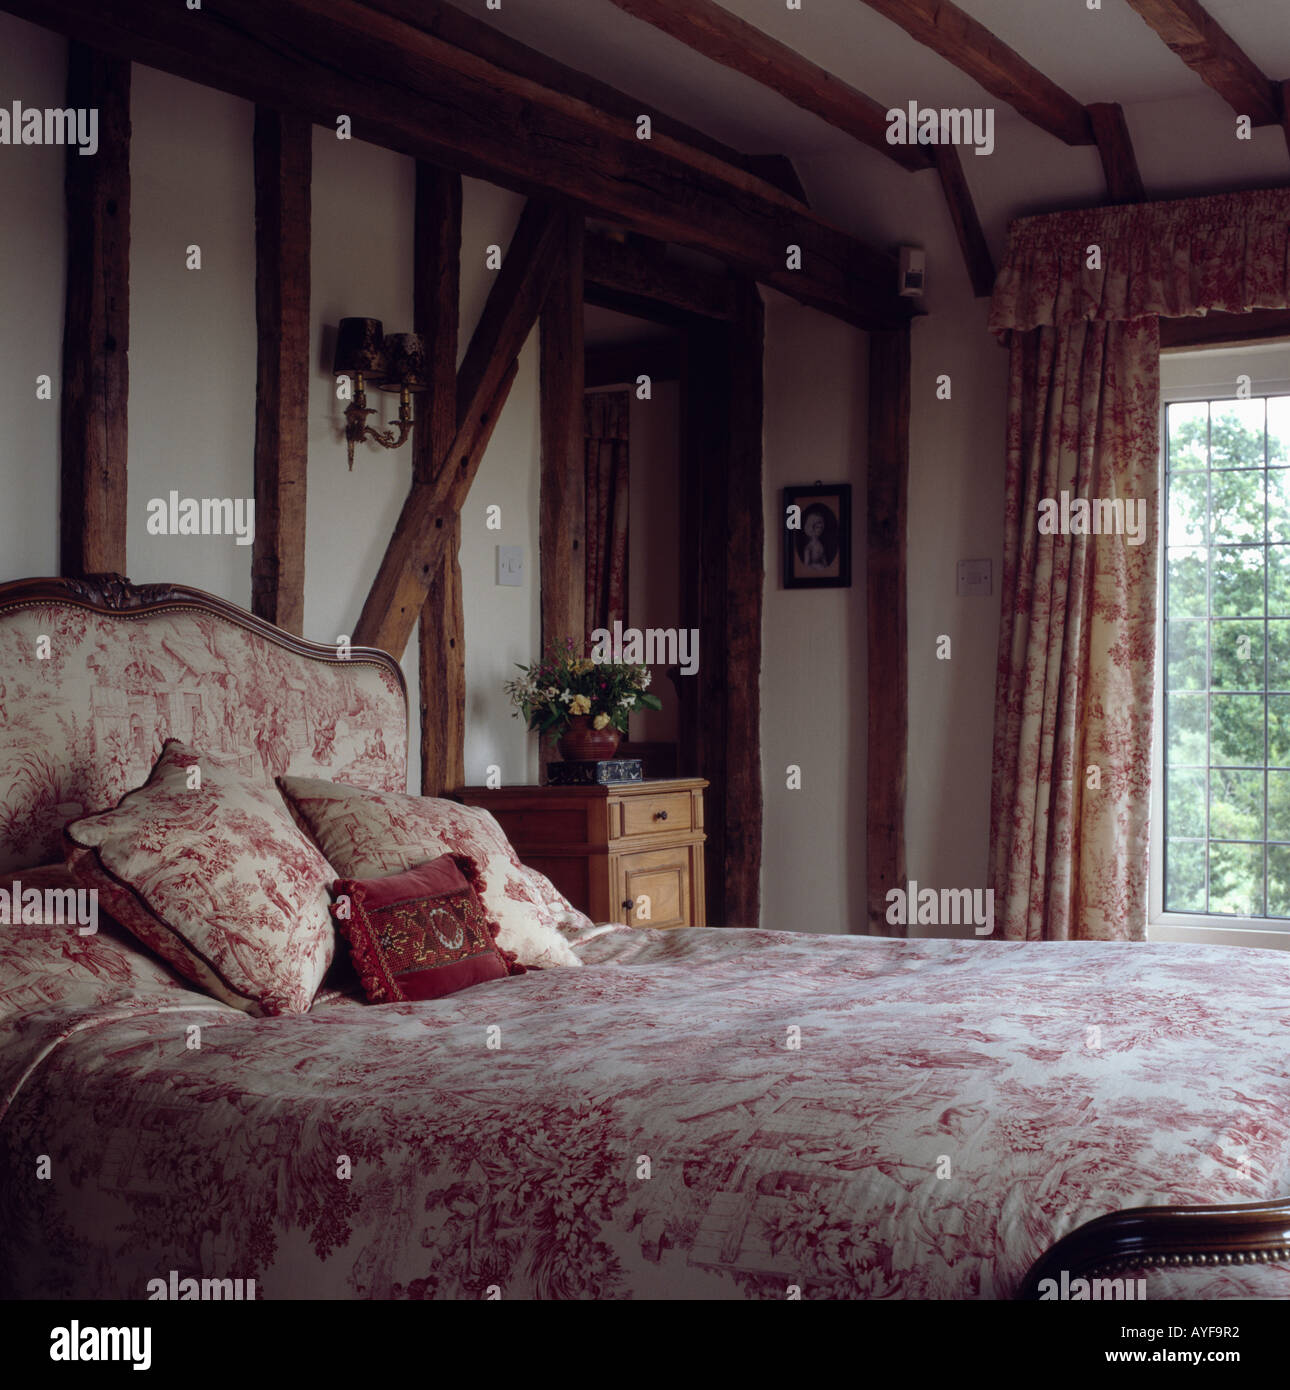 Pink Bedroom With Beamed Walls And Bed With Upholstered Headboard And Stock Photo Alamy